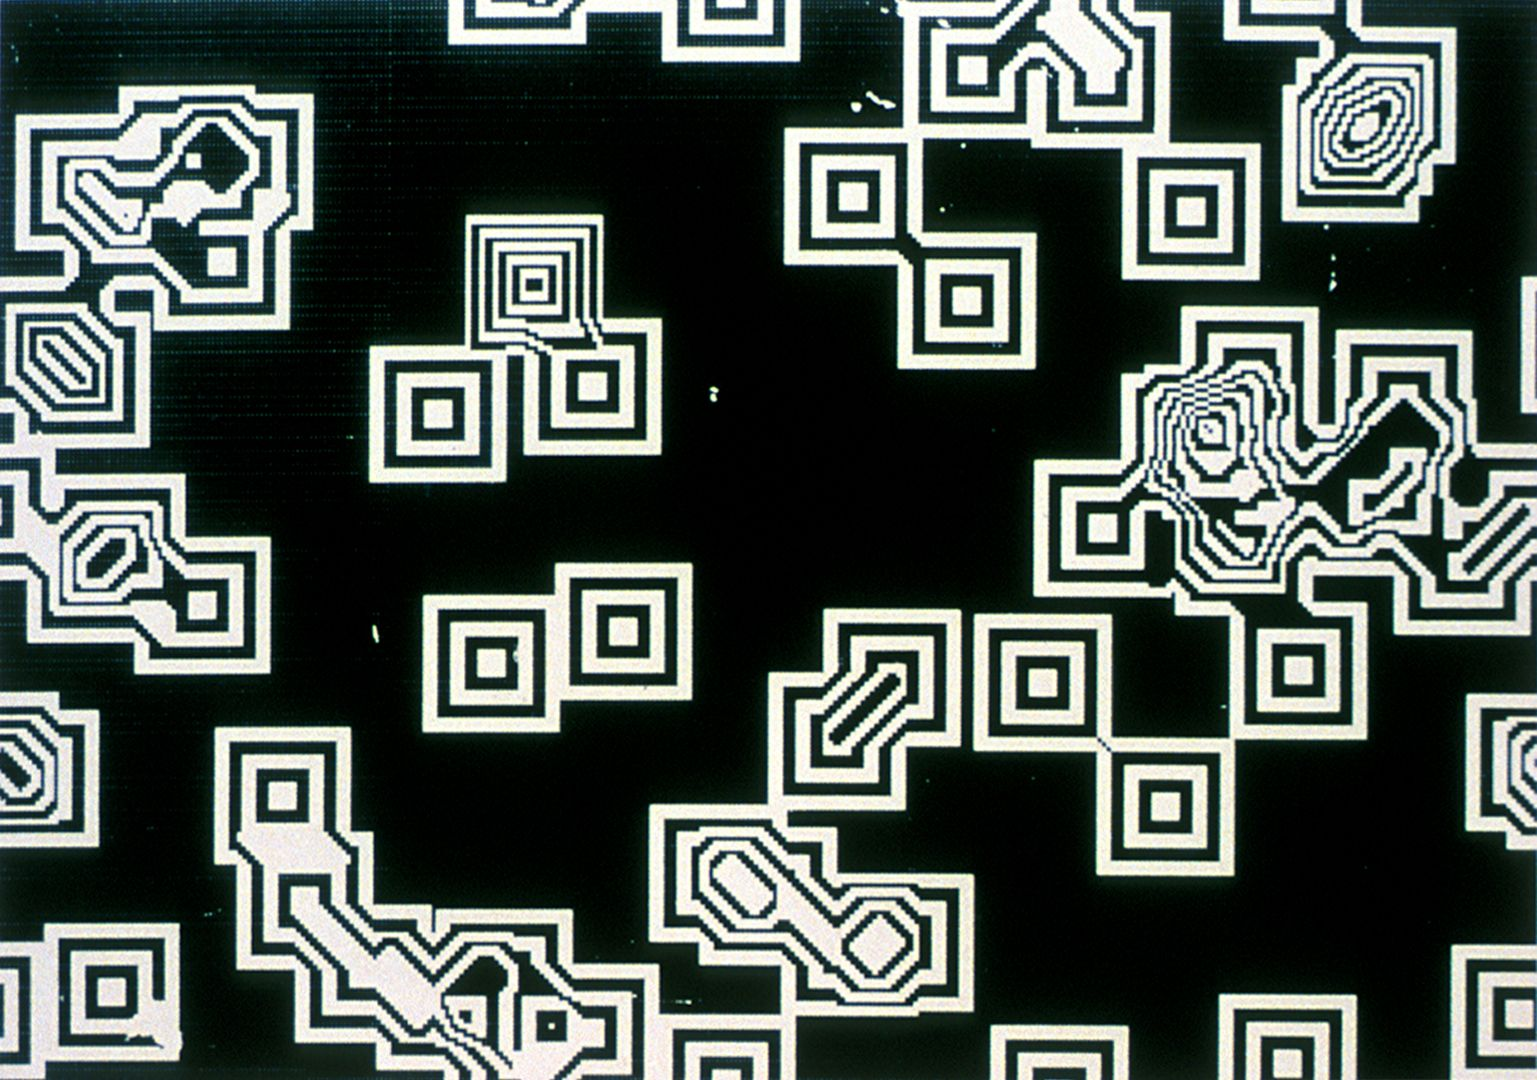 Lillian Schwartz and Kenneth C. Knowlton, Pixillation, 1970, Source: Digital Art Archive, Copyright © 1970, Lillian F. Schwartz and Kenneth C. Knowlton [3]